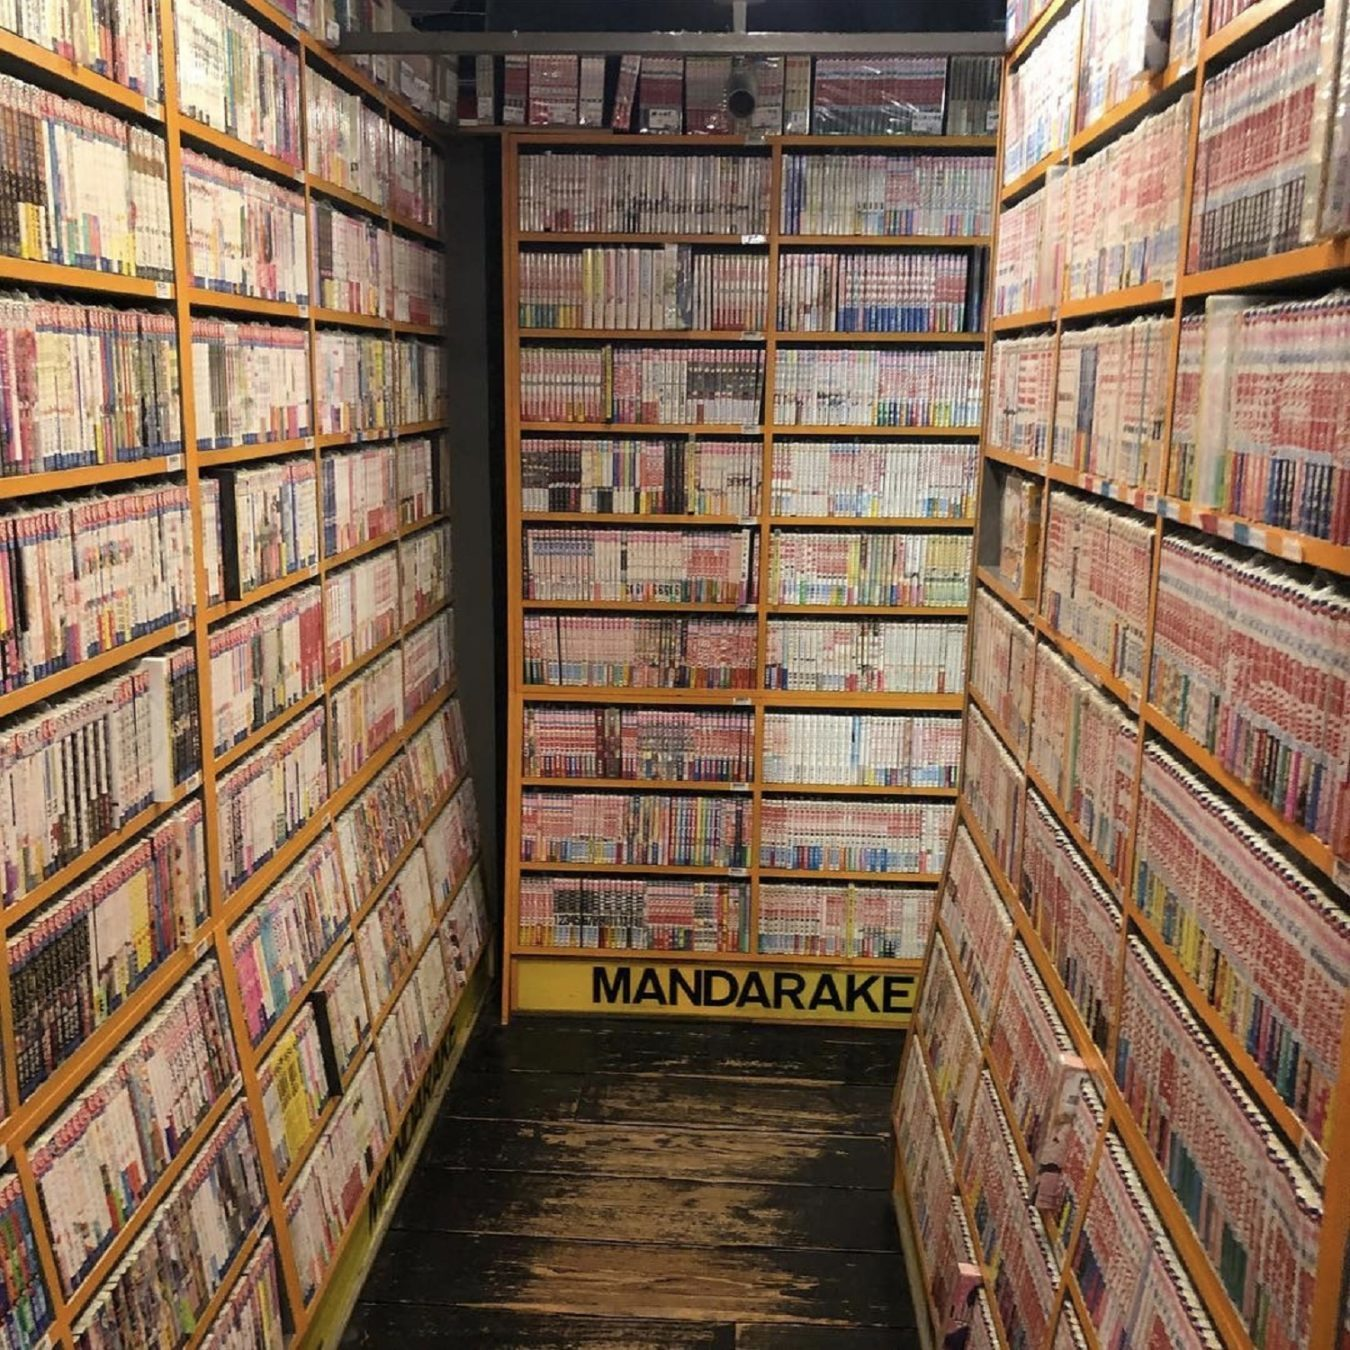 Lost in the country of manga, guys